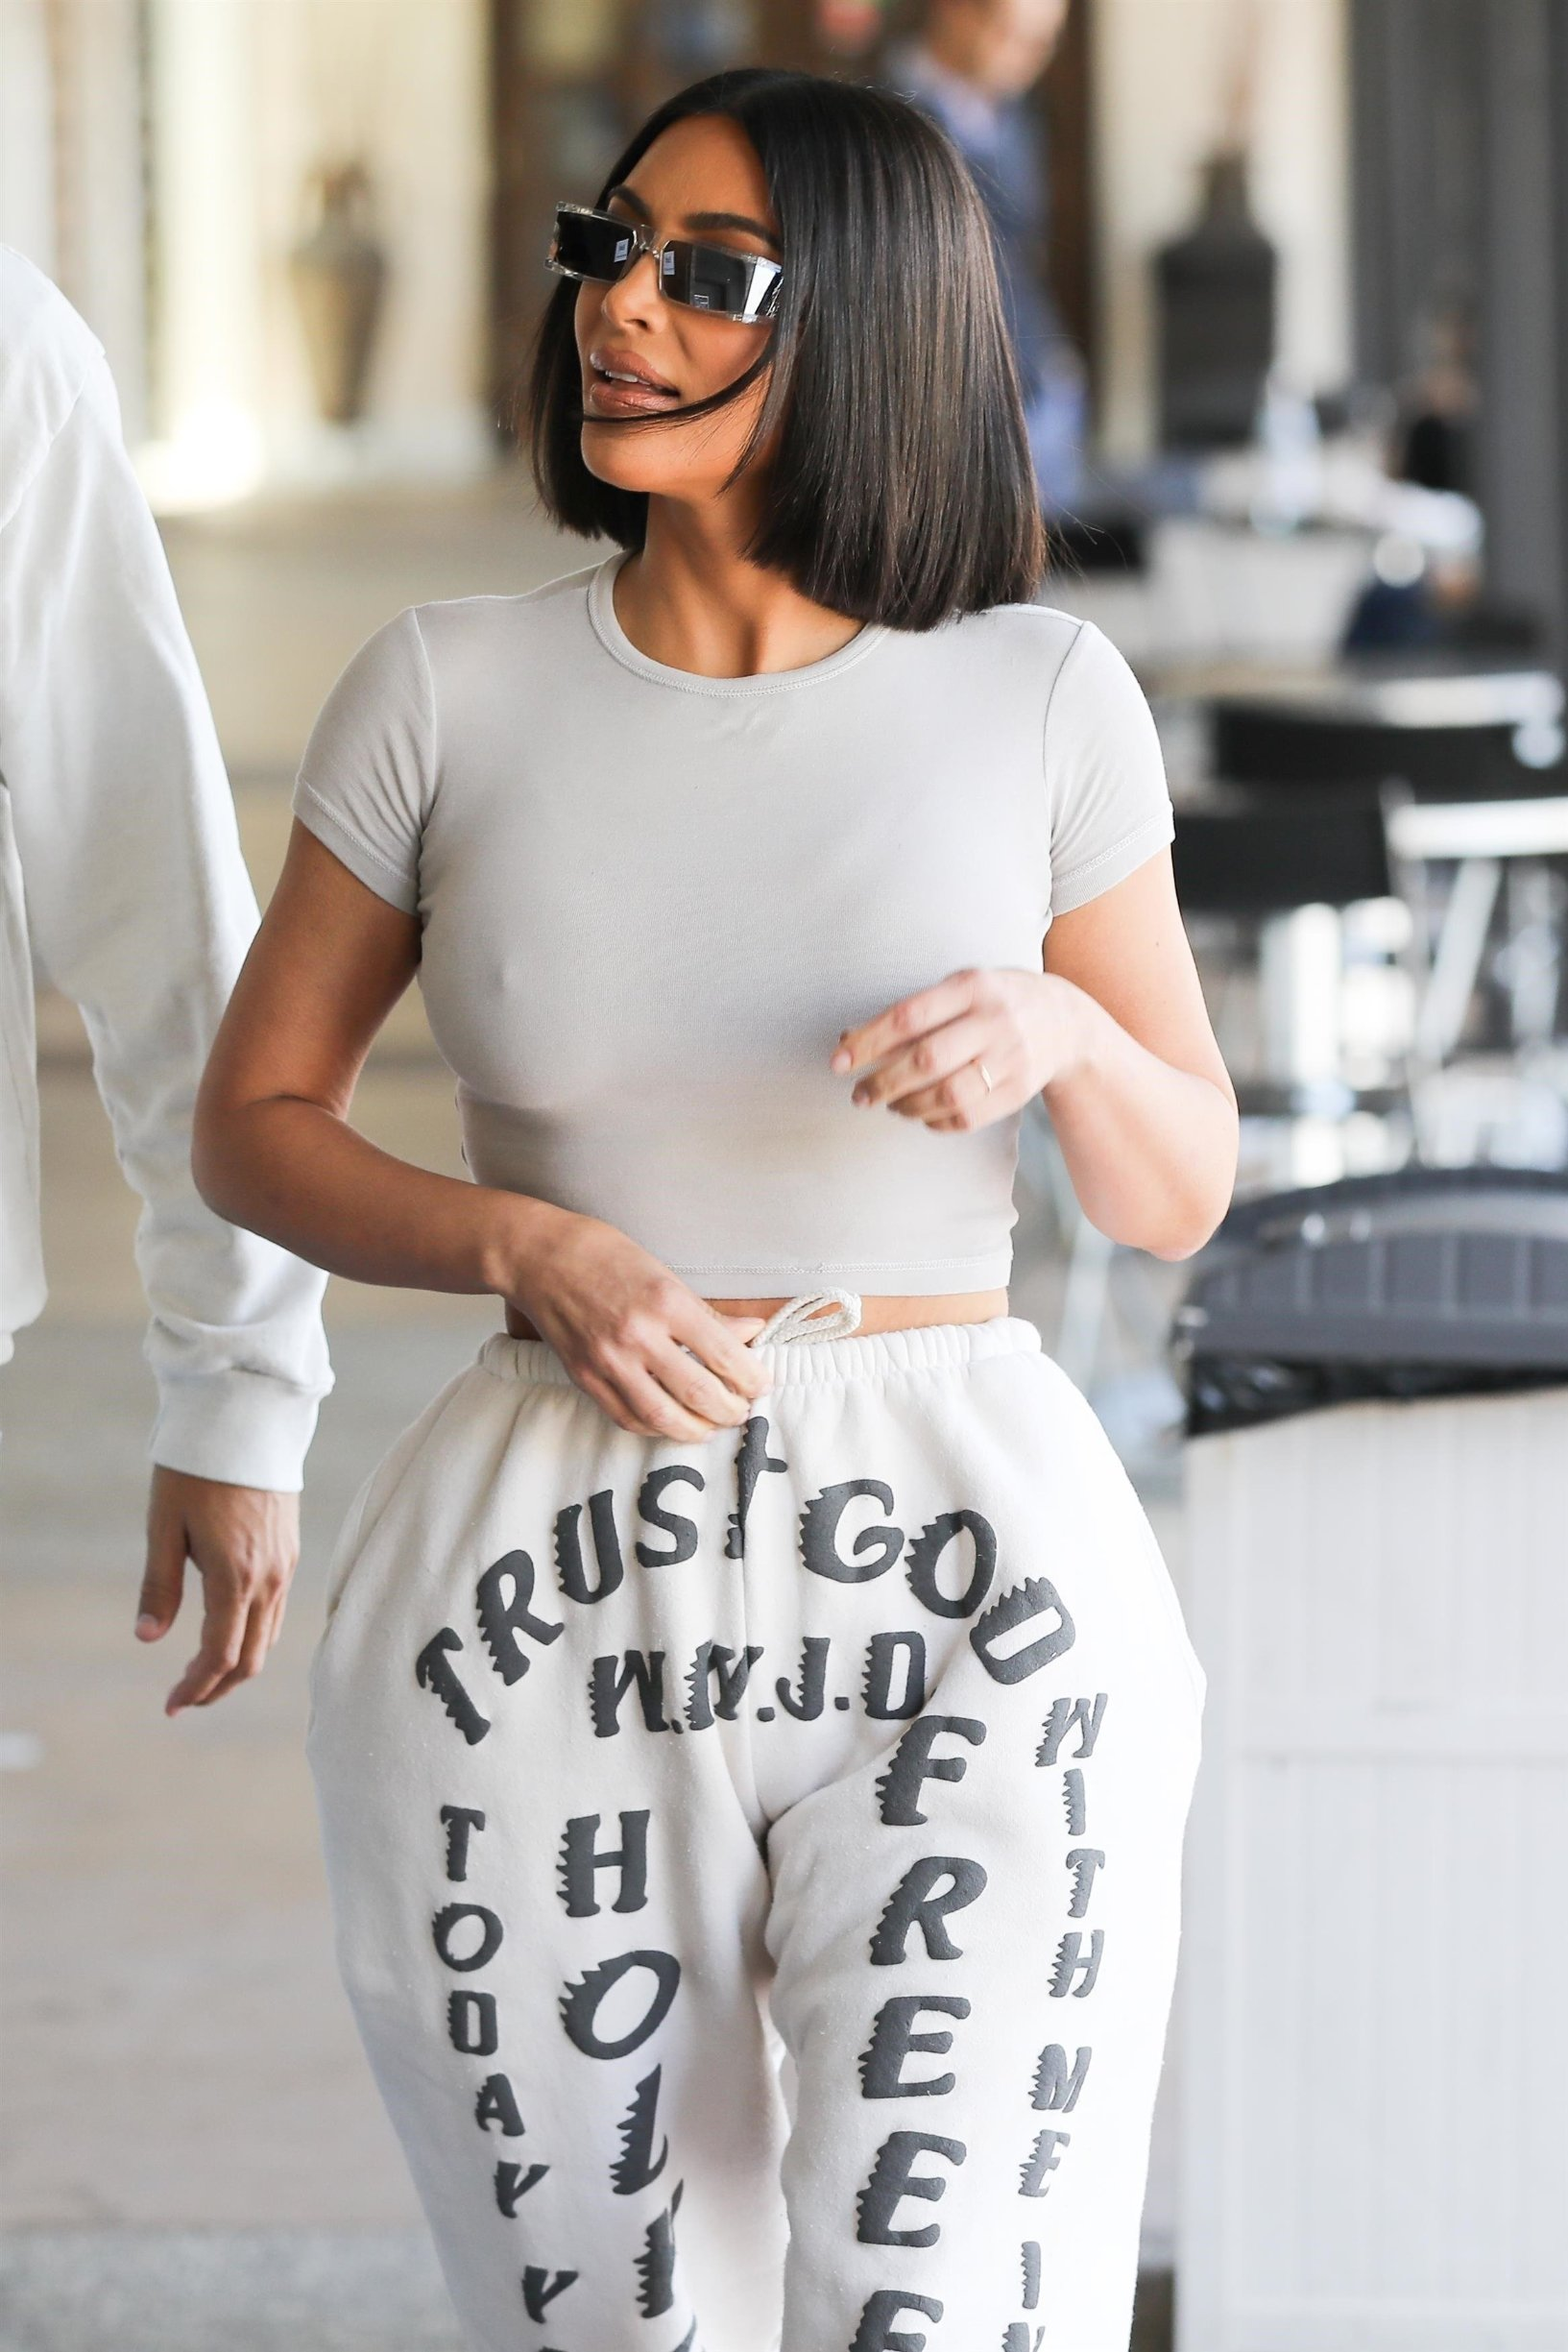 *EXCLUSIVE* Calabasas, CA  - Kim Kardashian, Khloe Kardashian, and Scott Disick depart after lunch together at Plata Taqueria & Cantina in Calabasas while filming for KUWTK.  BACKGRID USA 28 MAY 2019, Image: 438755989, License: Rights-managed, Restrictions: , Model Release: no, Credit line: Profimedia, Backgrid USA